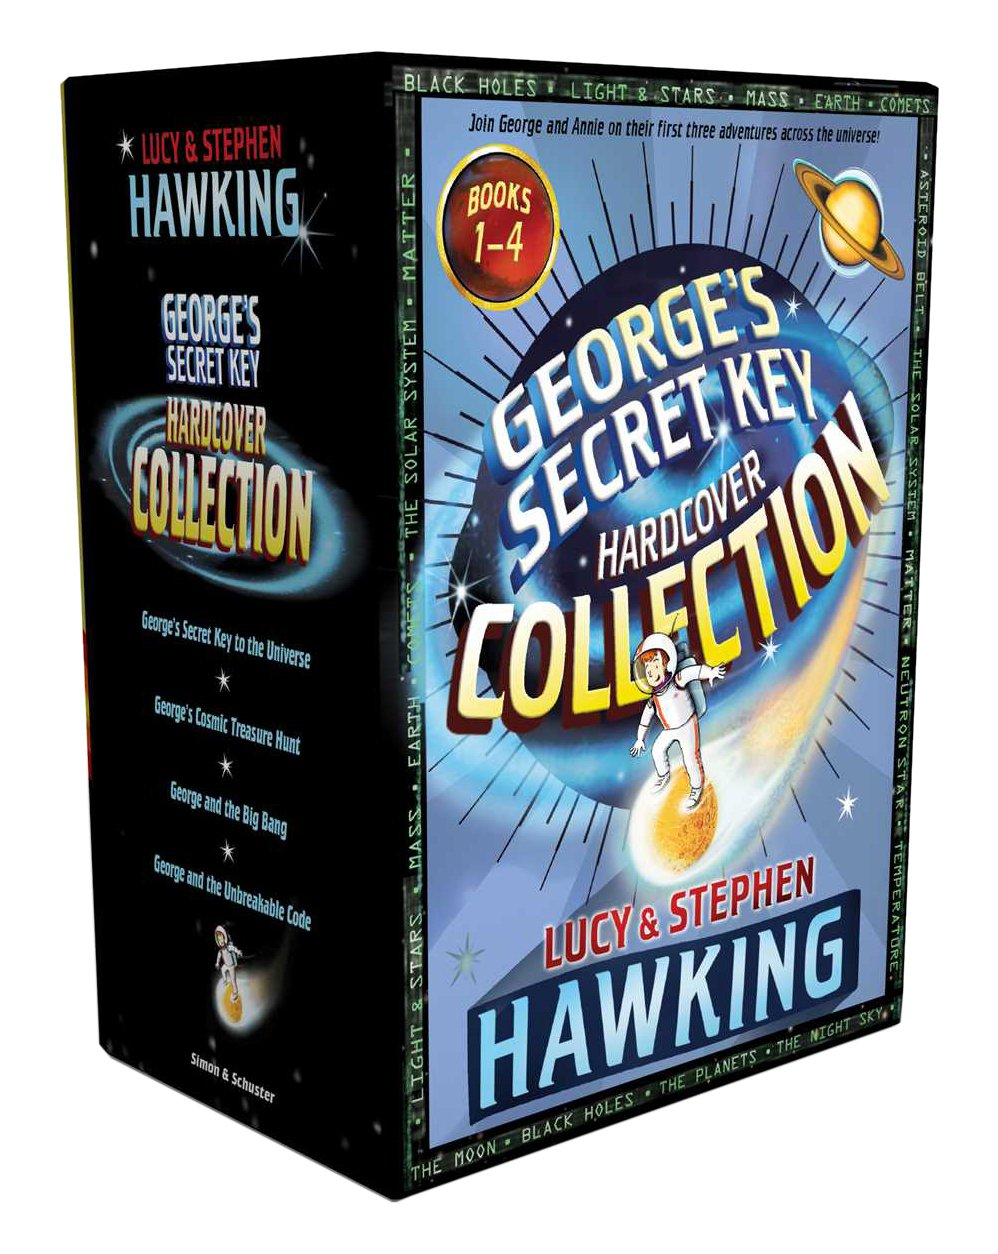 George's Secret Key Hardcover Collection: George's Secret Key to the Universe; George's Cosmic Treasure Hunt; George and the Big Bang; George and the Unbreakable Code